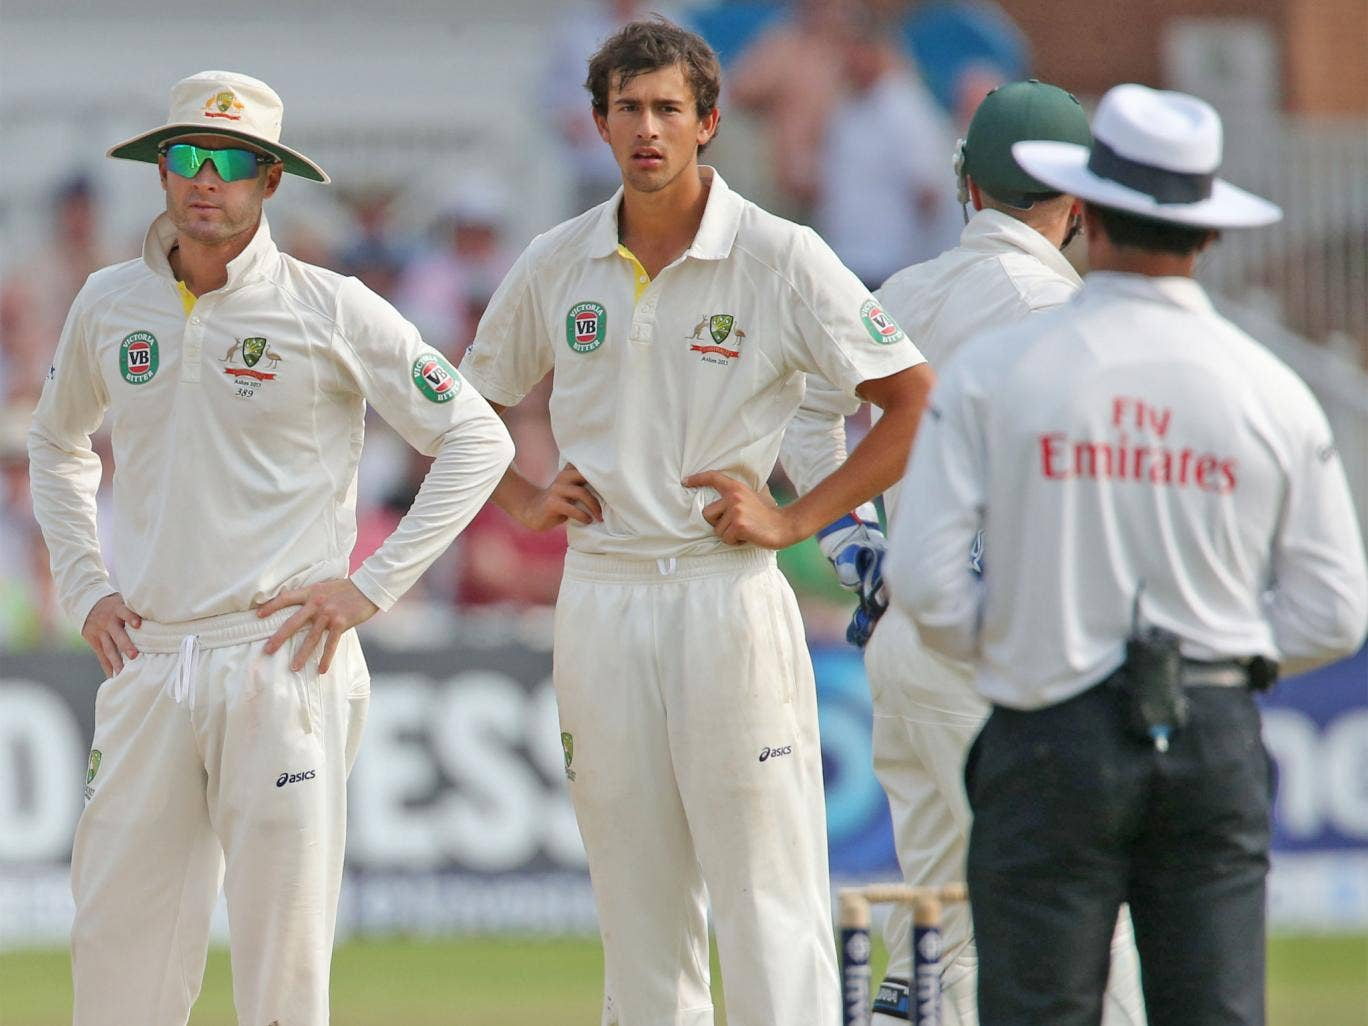 Michael Clarke and Ashton Agar look towards umpire Aleem Dar after the Stuart Broad incident